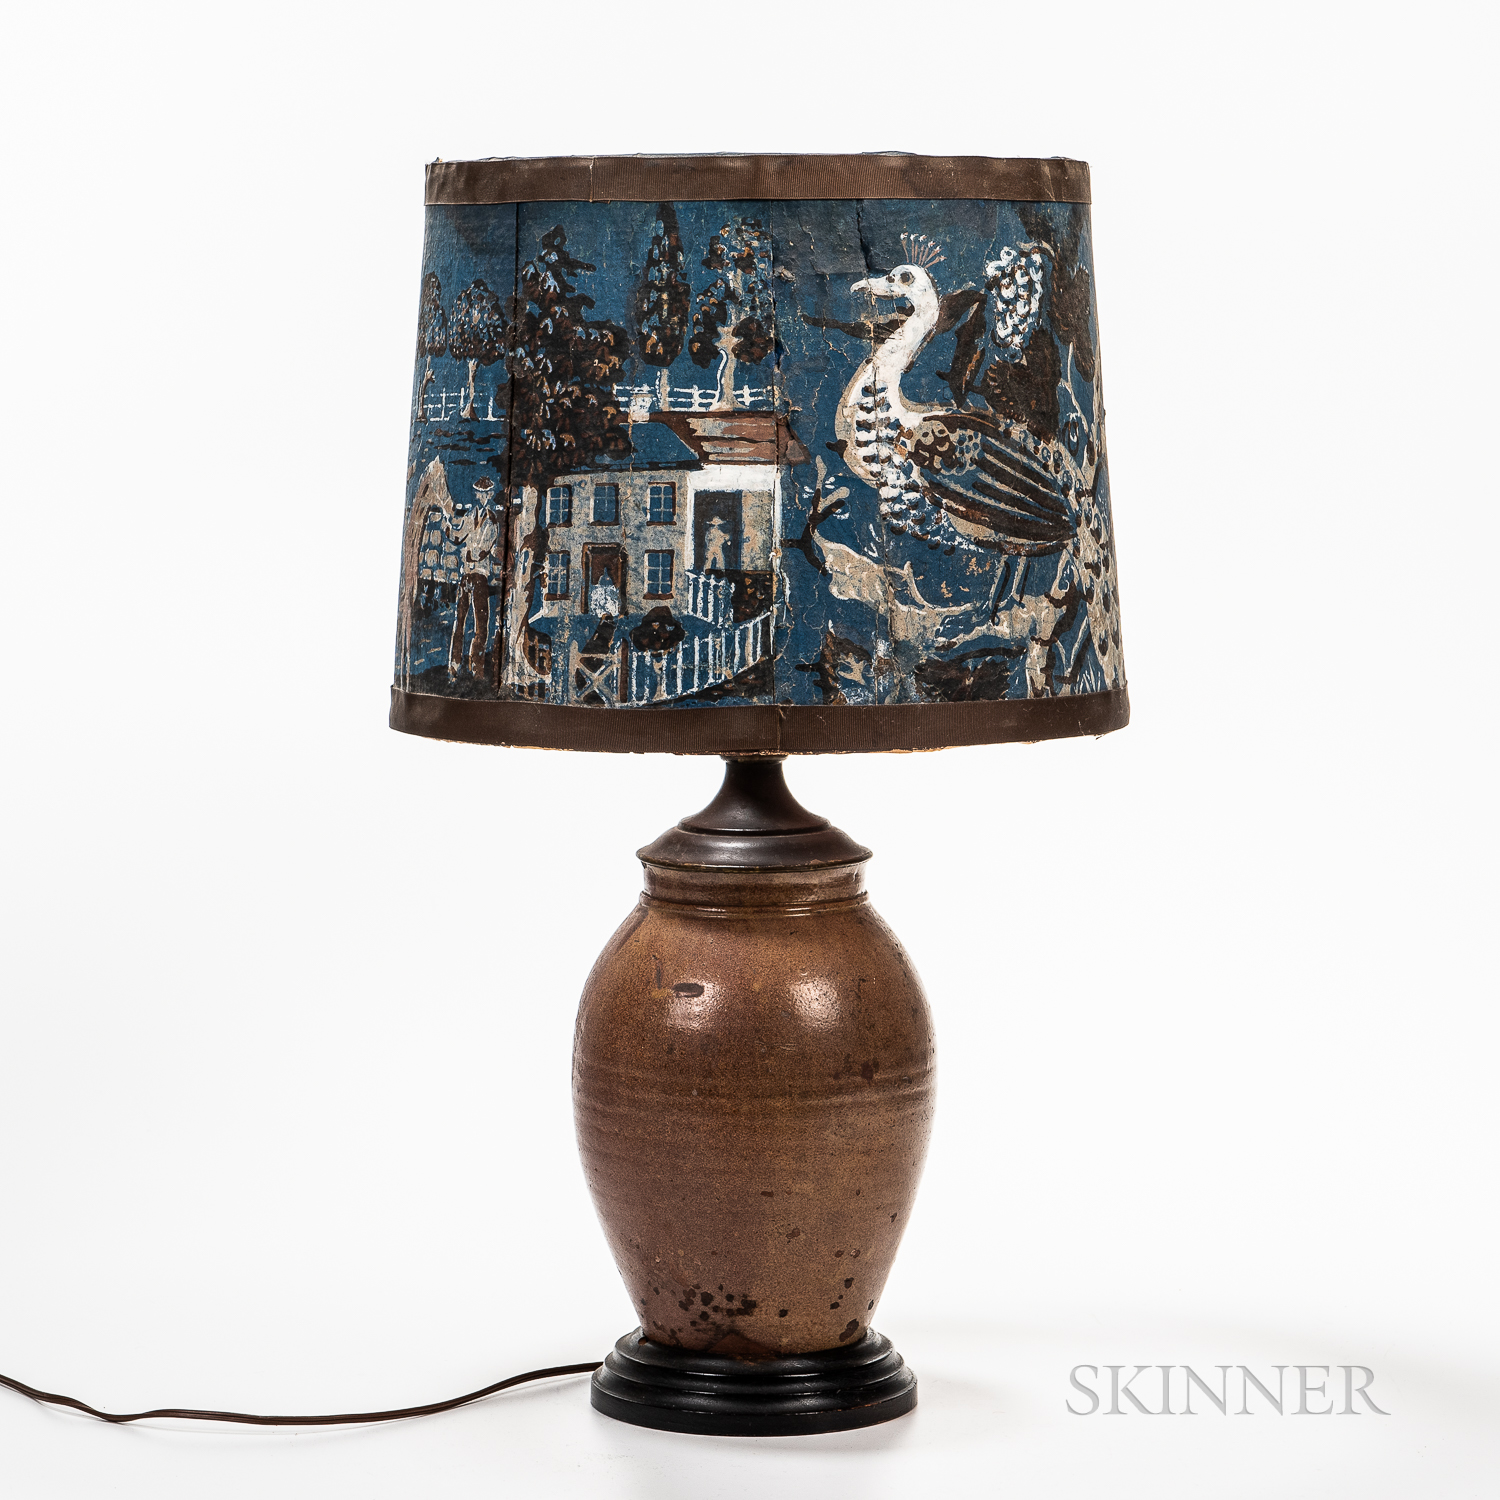 Glazed Redware Jar Mounted as a Lamp with Shade Made from a Wallpaper Box